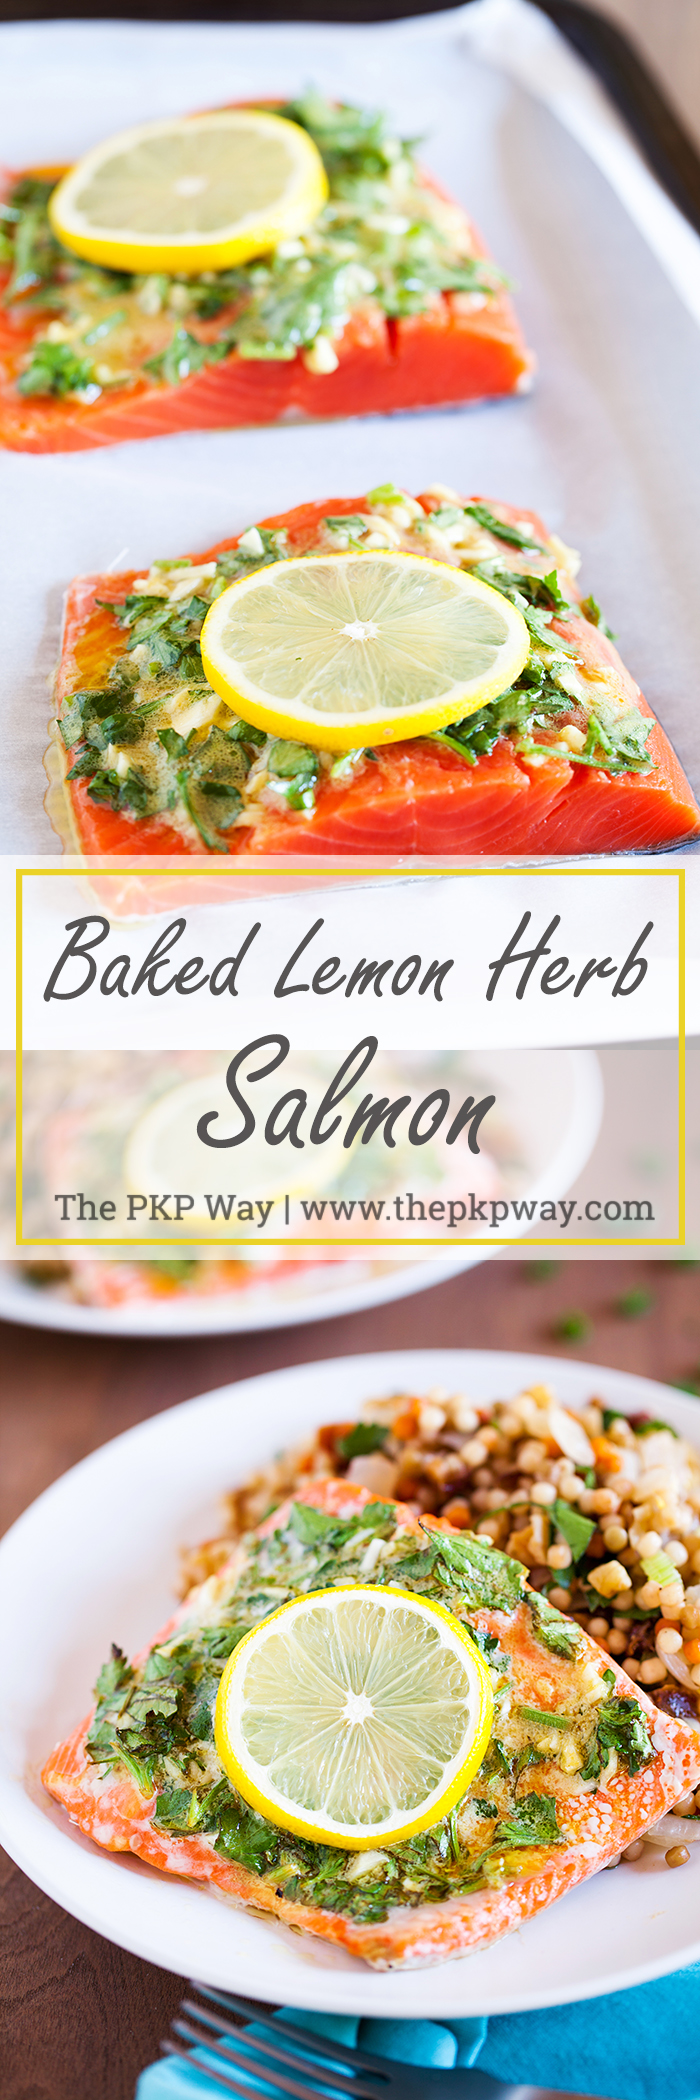 baked-lemon-herb-salmon-16